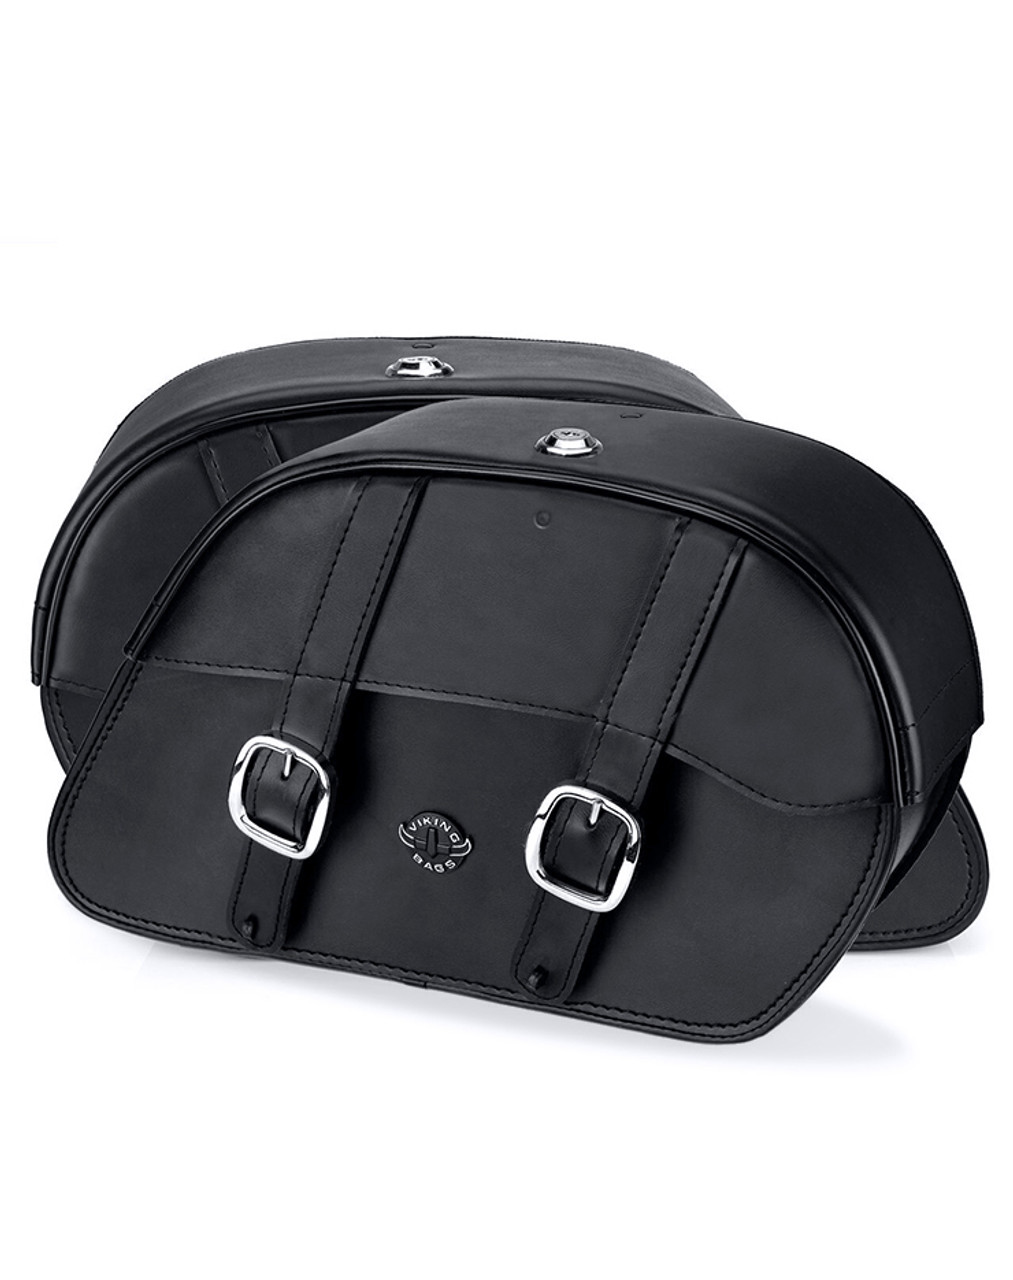 VikingBags Skarner Large Double Strap Victory High Ball Leather Motorcycle Saddlebags both bags view